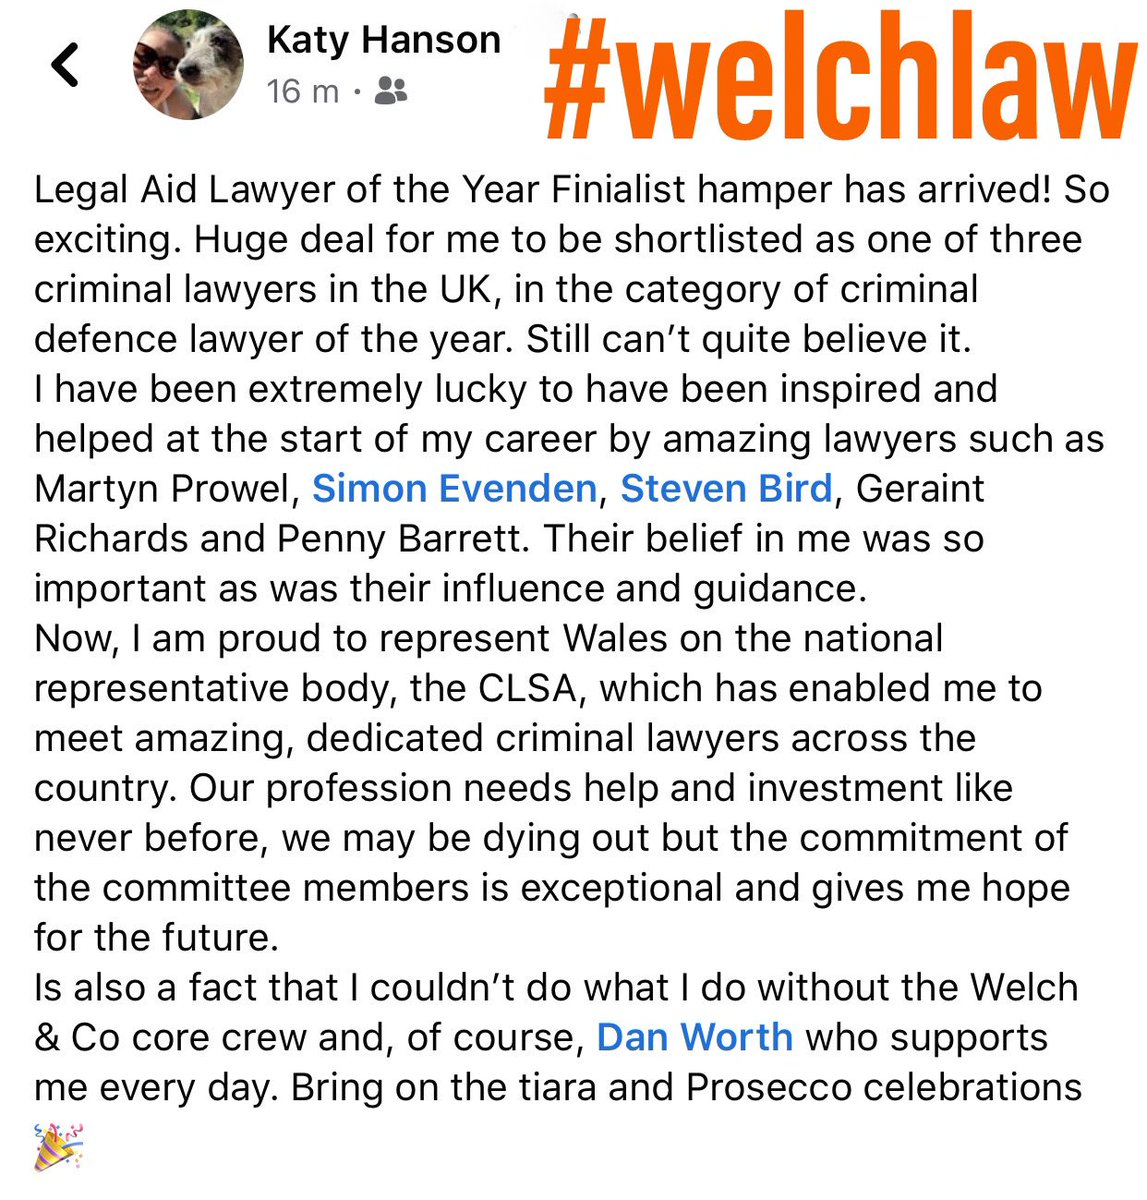 Woohoo! So excited, 3 more sleeps #LALY20 Some words from our @kcehanson The whole #welchlaw Team are very proud of you and your achievements.... & to all our Legal Aid Lawyer colleagues, you're #justiceheroes all! 🙌🏻🙌🏻 https://t.co/AEqMSrlUSm